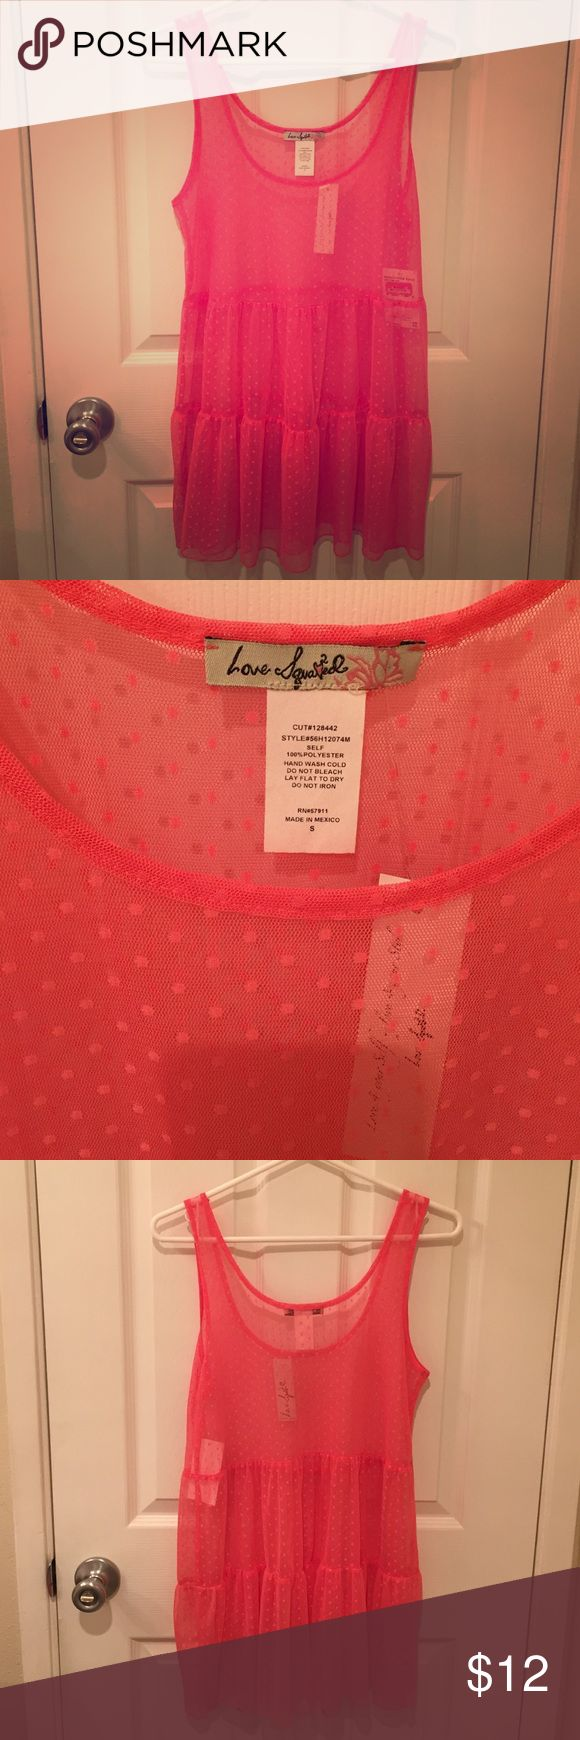 Sheer Coral Top Cute coral see through top with polka dot pattern. Size small. Would be cute paired over a bandeau, bikini top, or tank top. Love Squared Tops Tank Tops